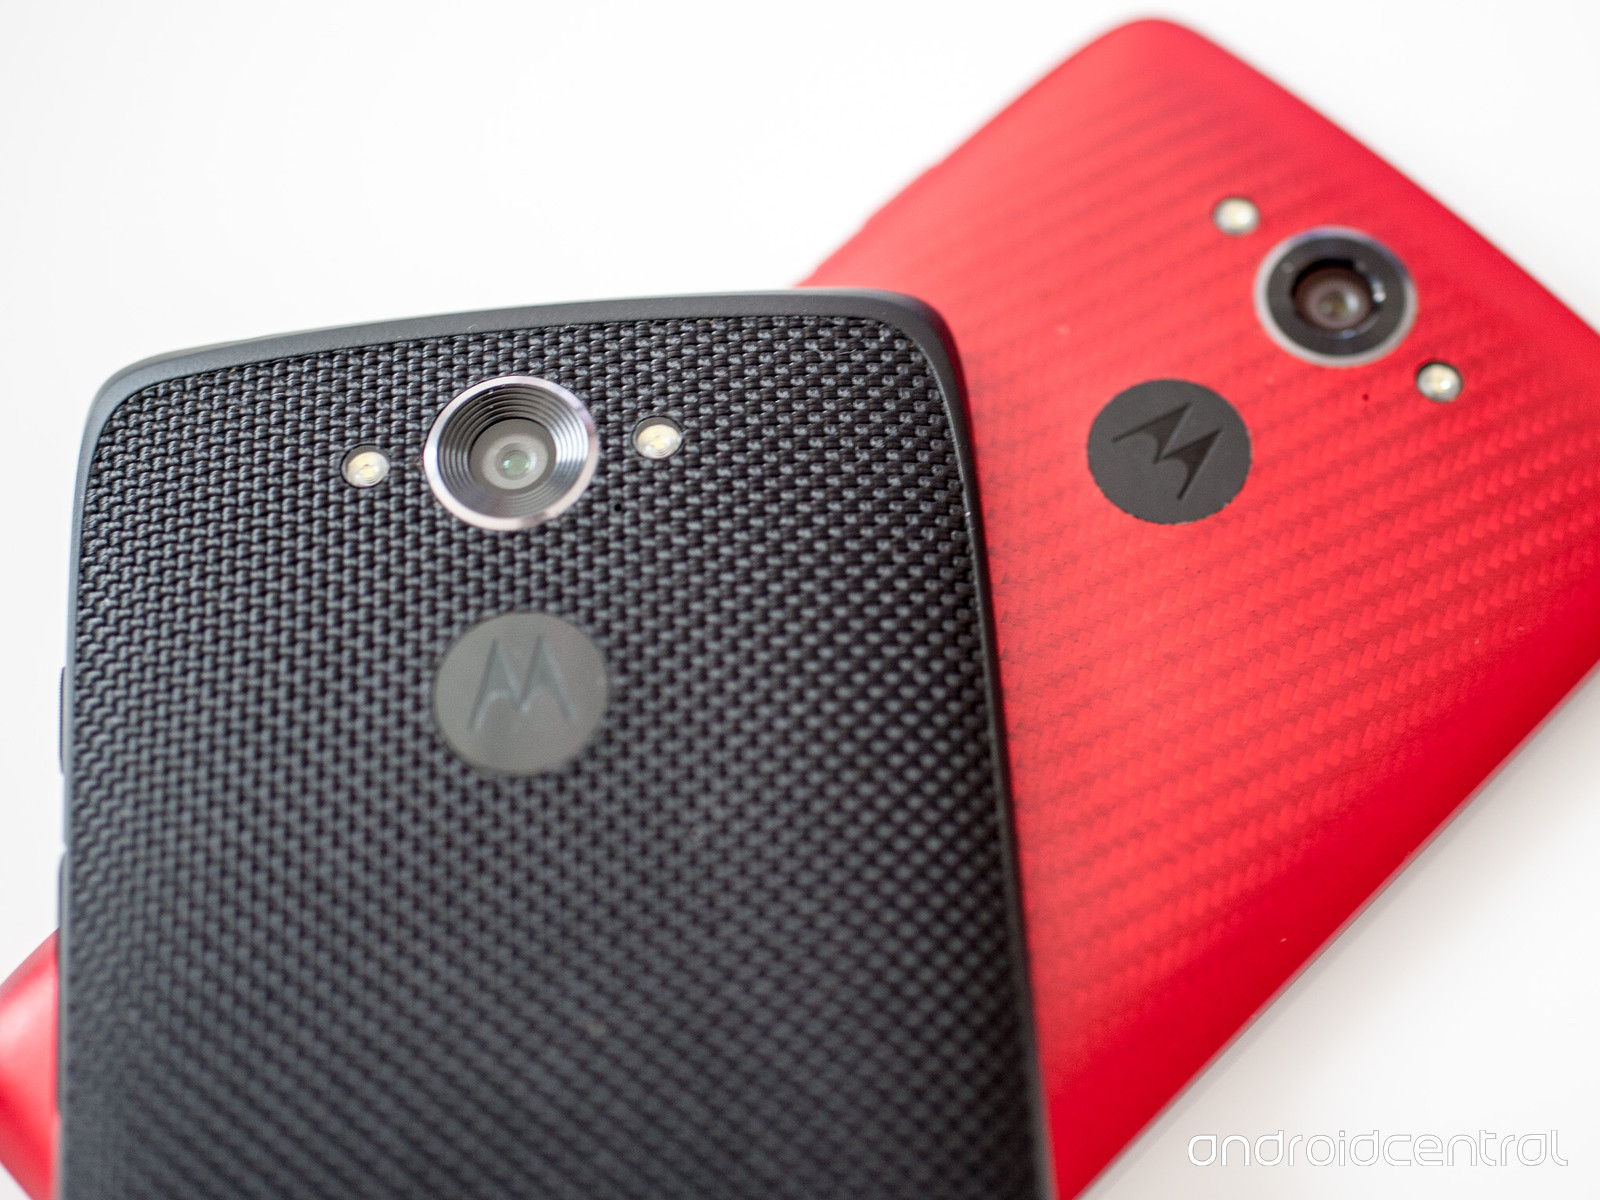 Motorola Moto Turbo Specifications Revealed